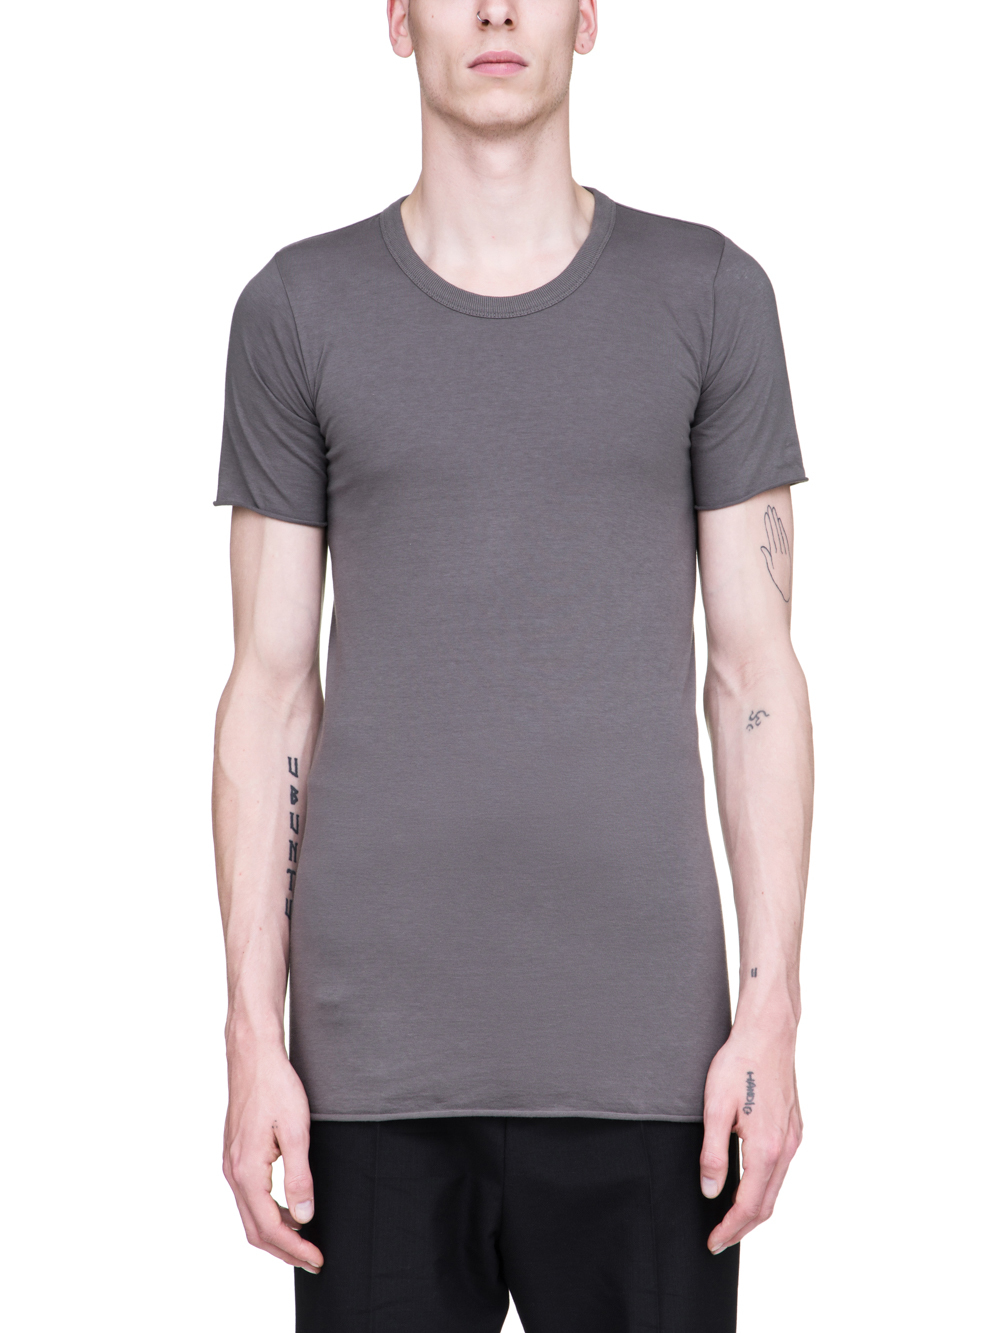 RICK OWENS SS19 BABEL BASIC SHORTSLEEVE TEE IN DUST GREY COTTON